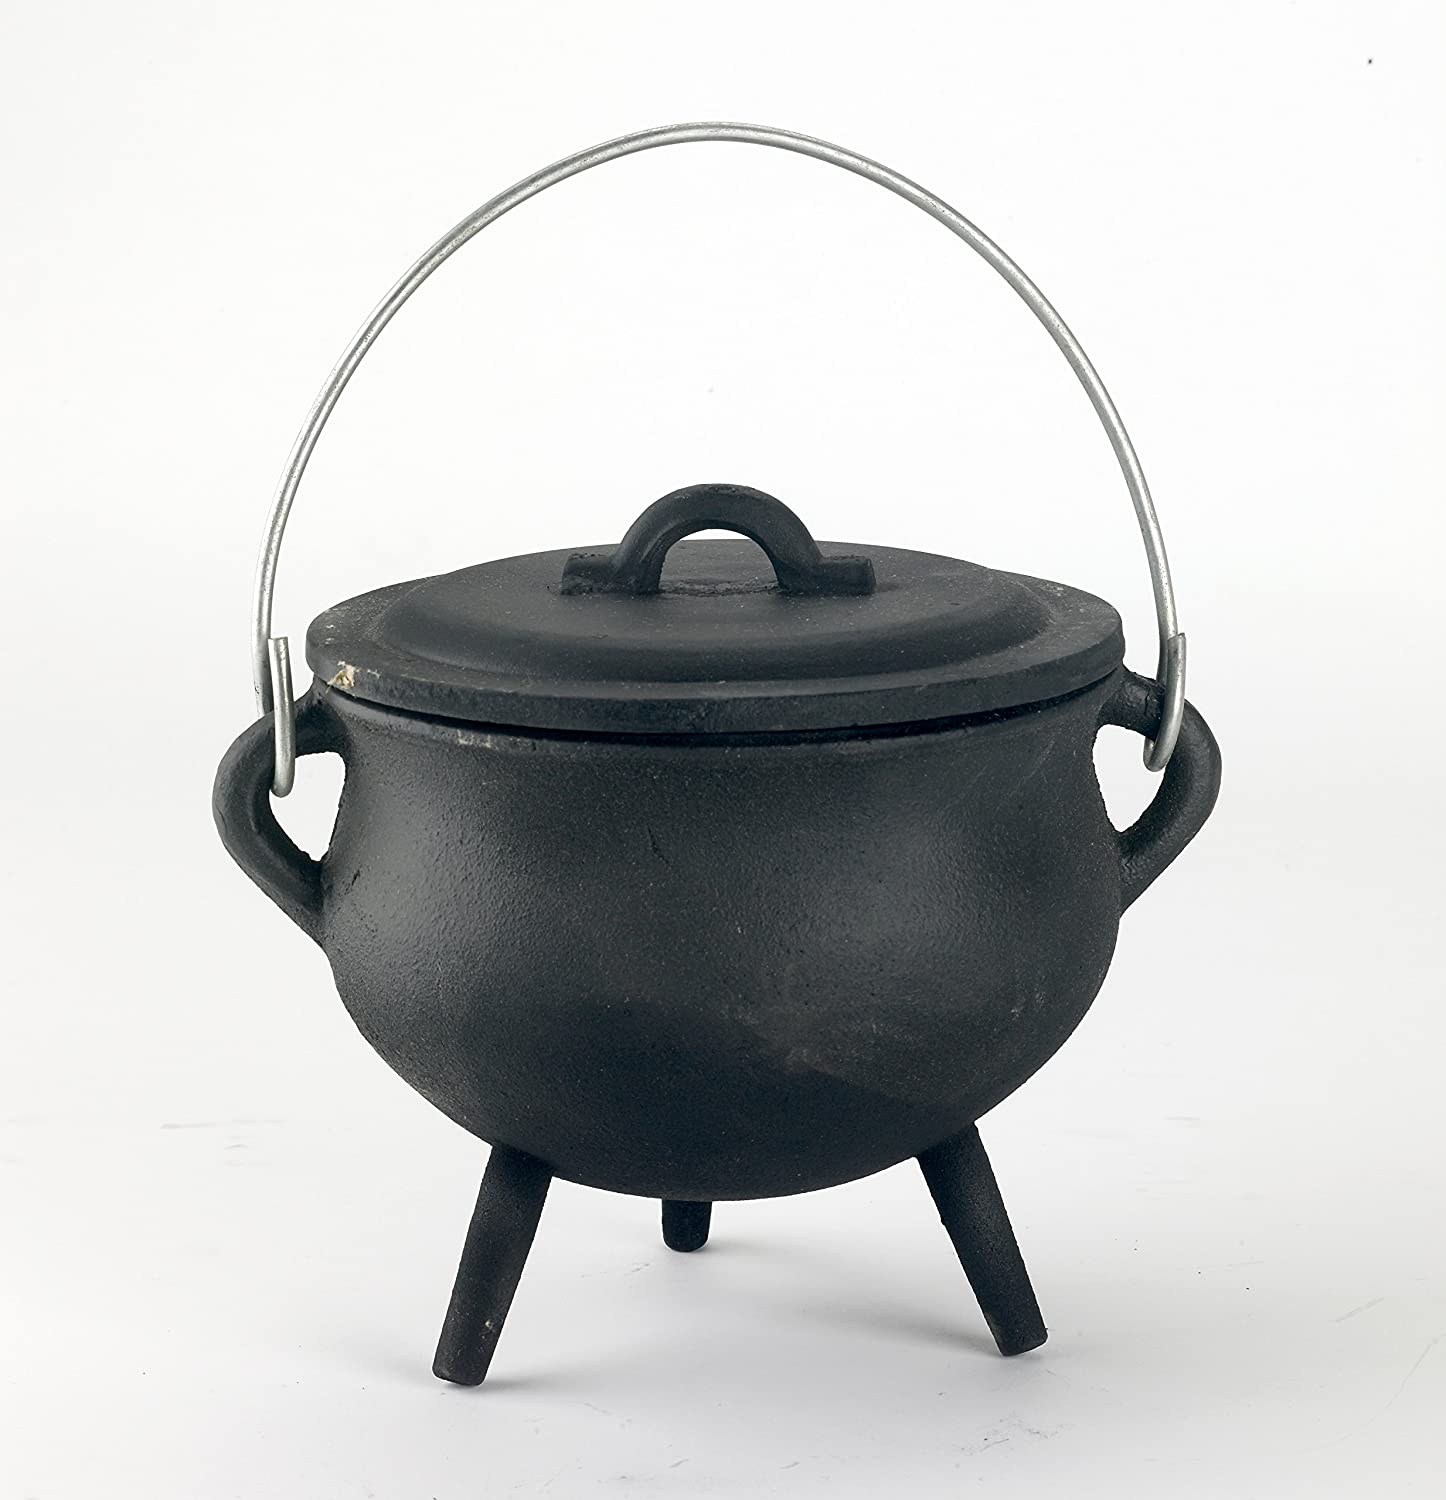 Cast Iron Plain Wiccan/Pagan/Witches Cauldron - Small Black Country Metal Works NG686